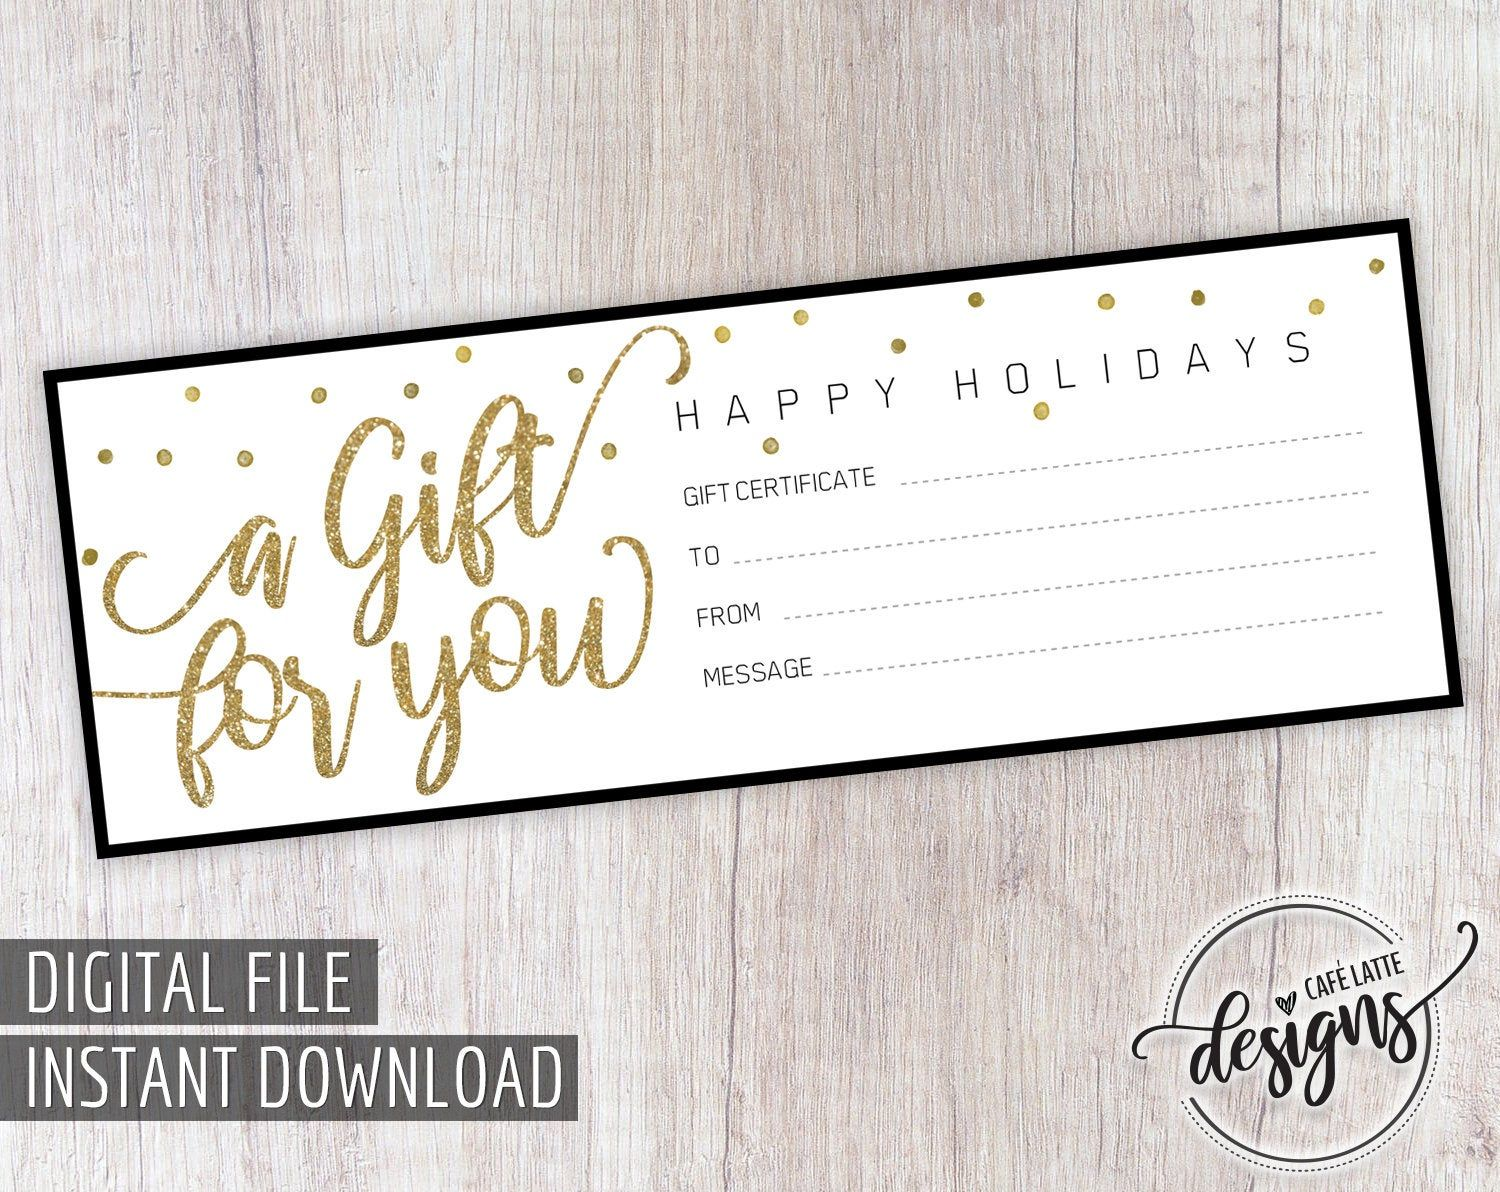 Christmas Gift Certificate Gift Certificate Printable Gift Etsy Printable Gift Certificate Christmas Gift Certificate Holiday Gift Certificates